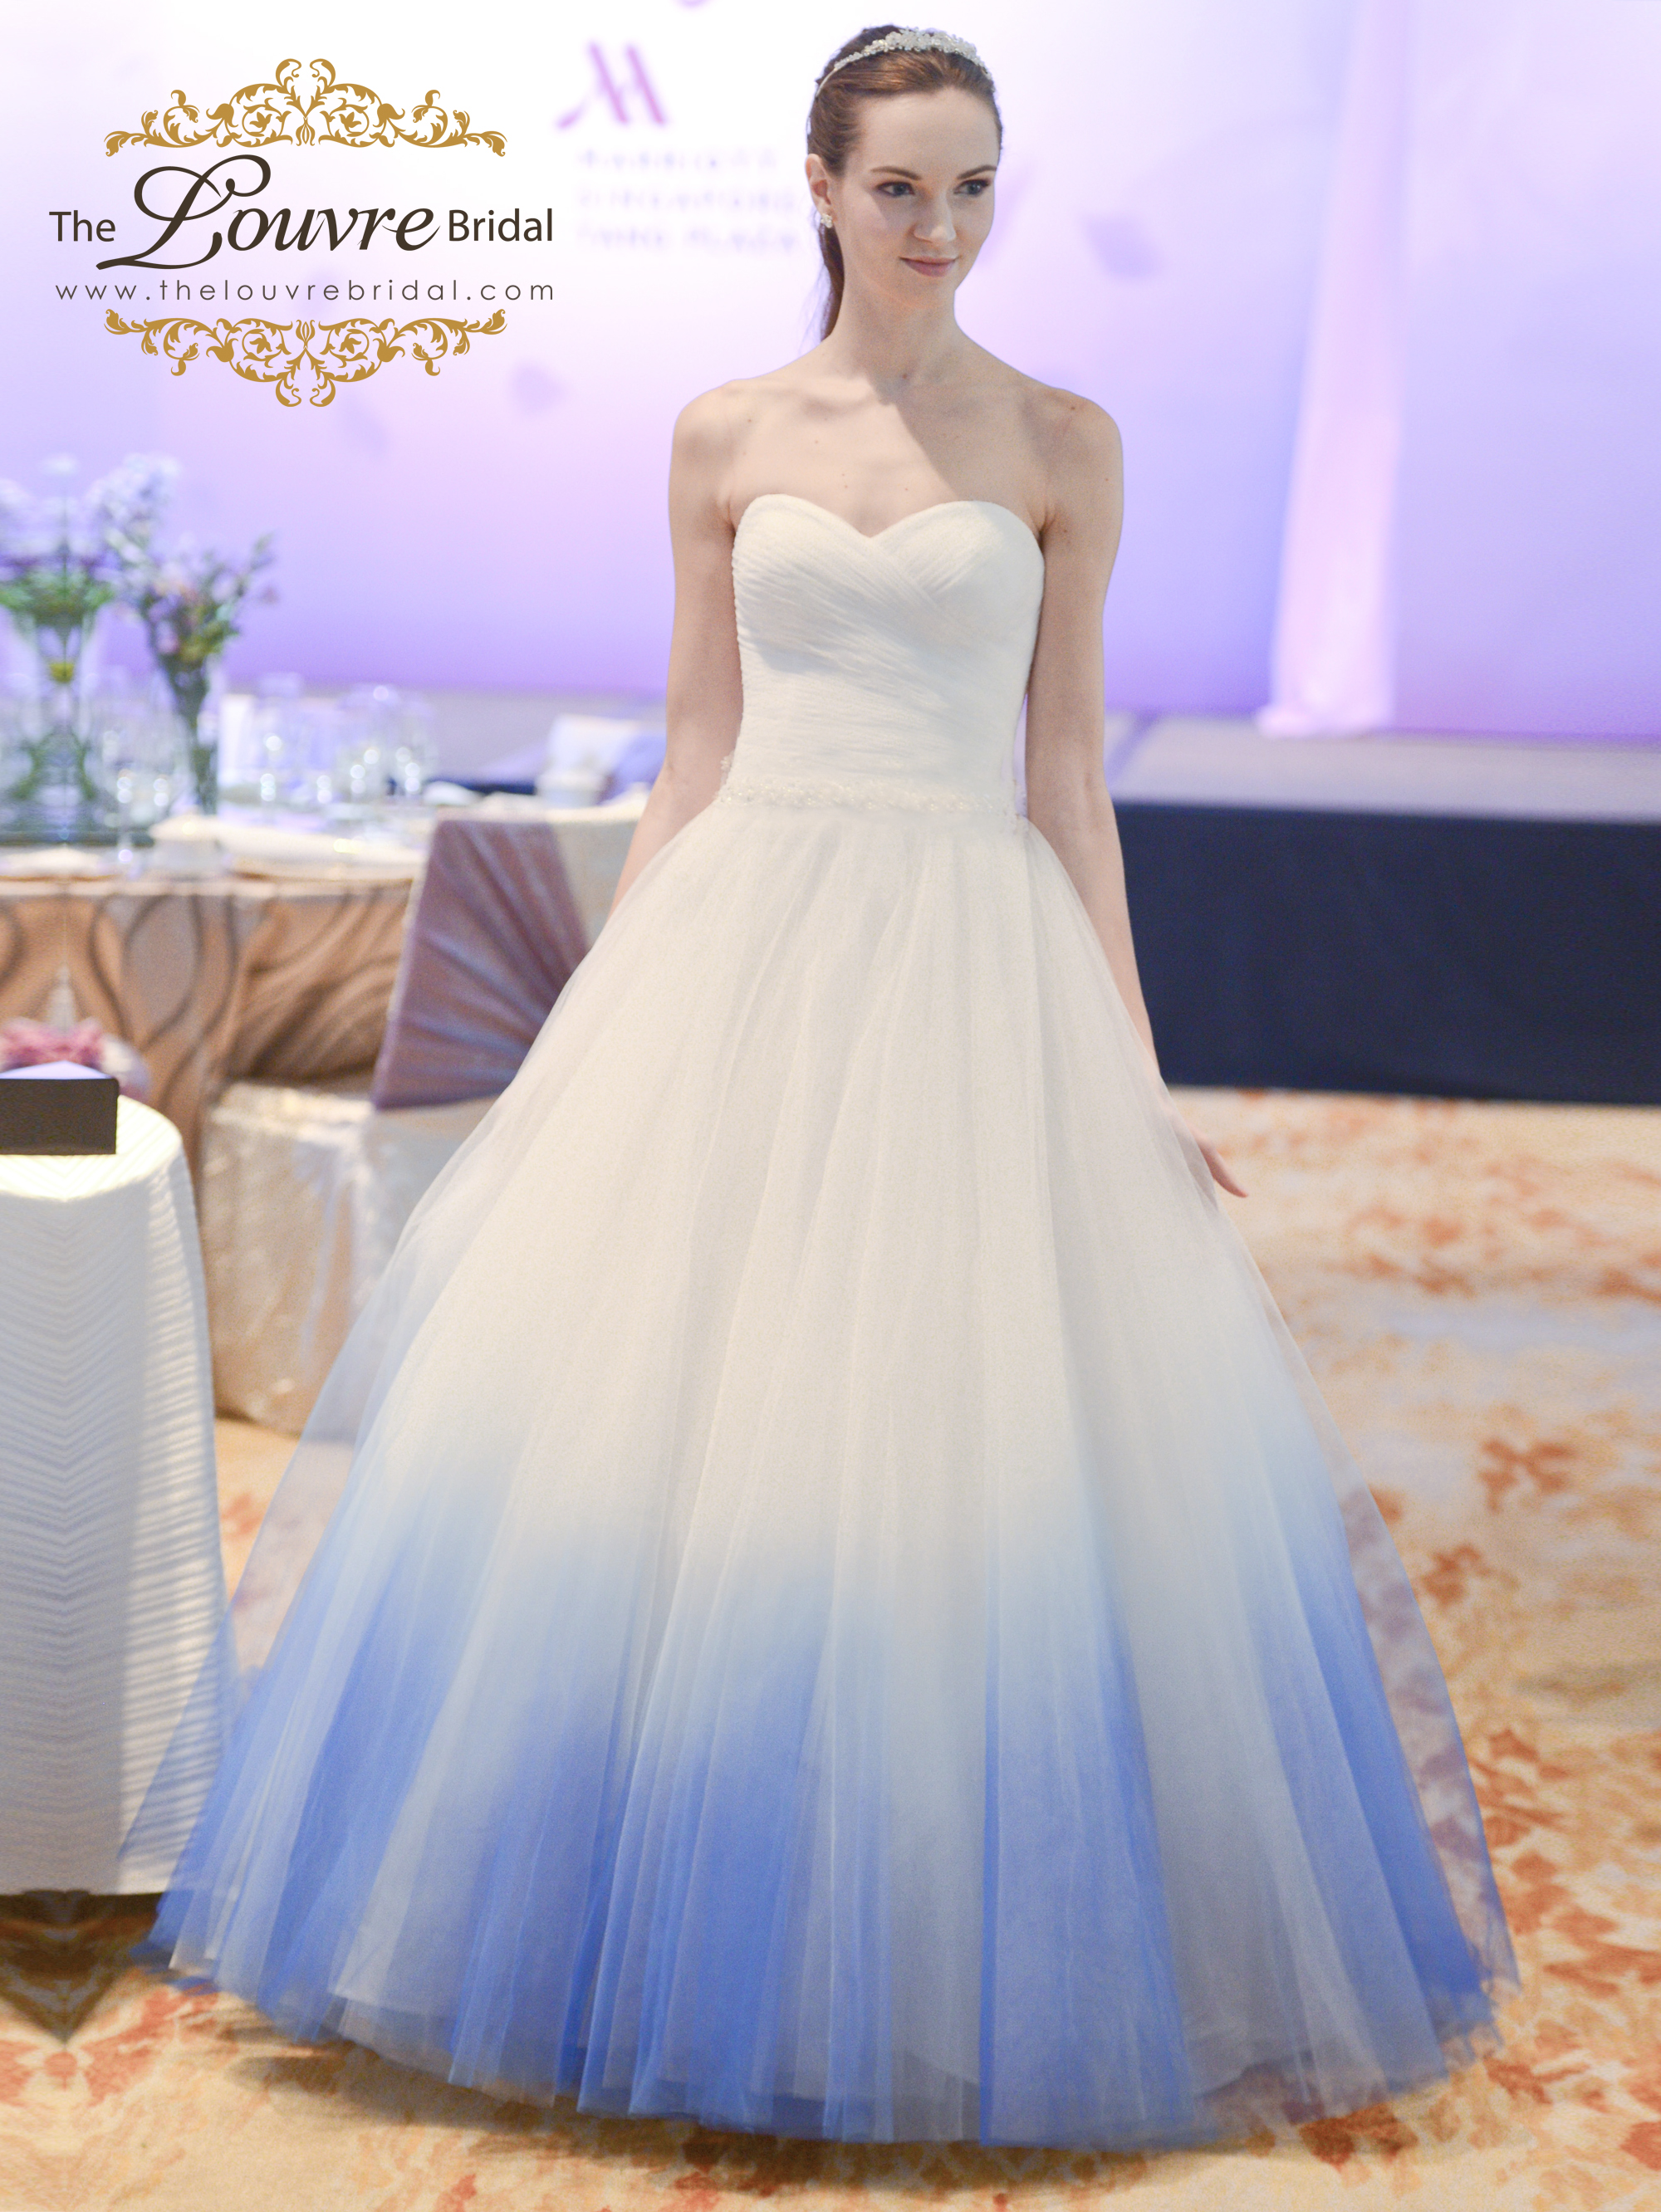 Wedding gown tips how to choose a flattering coloured for How to pick a wedding dress